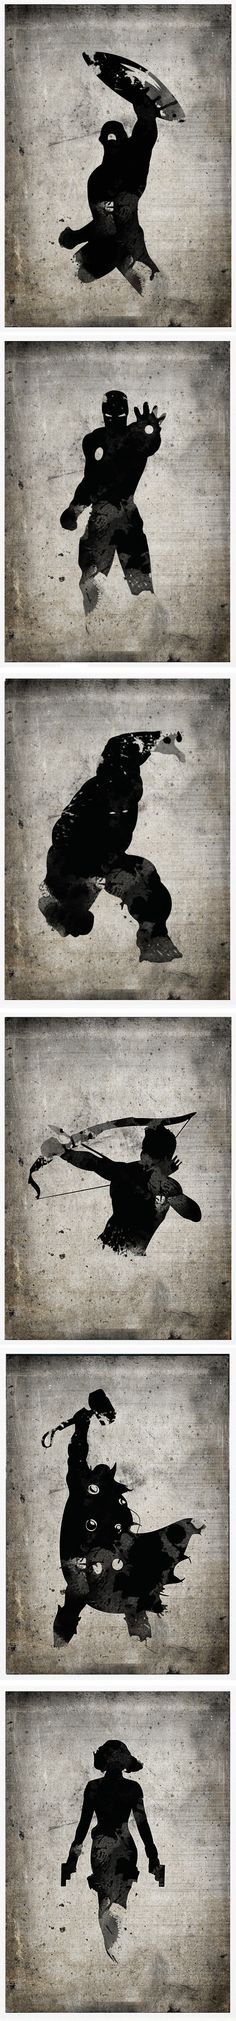 Avengers posters by Marcus Mok